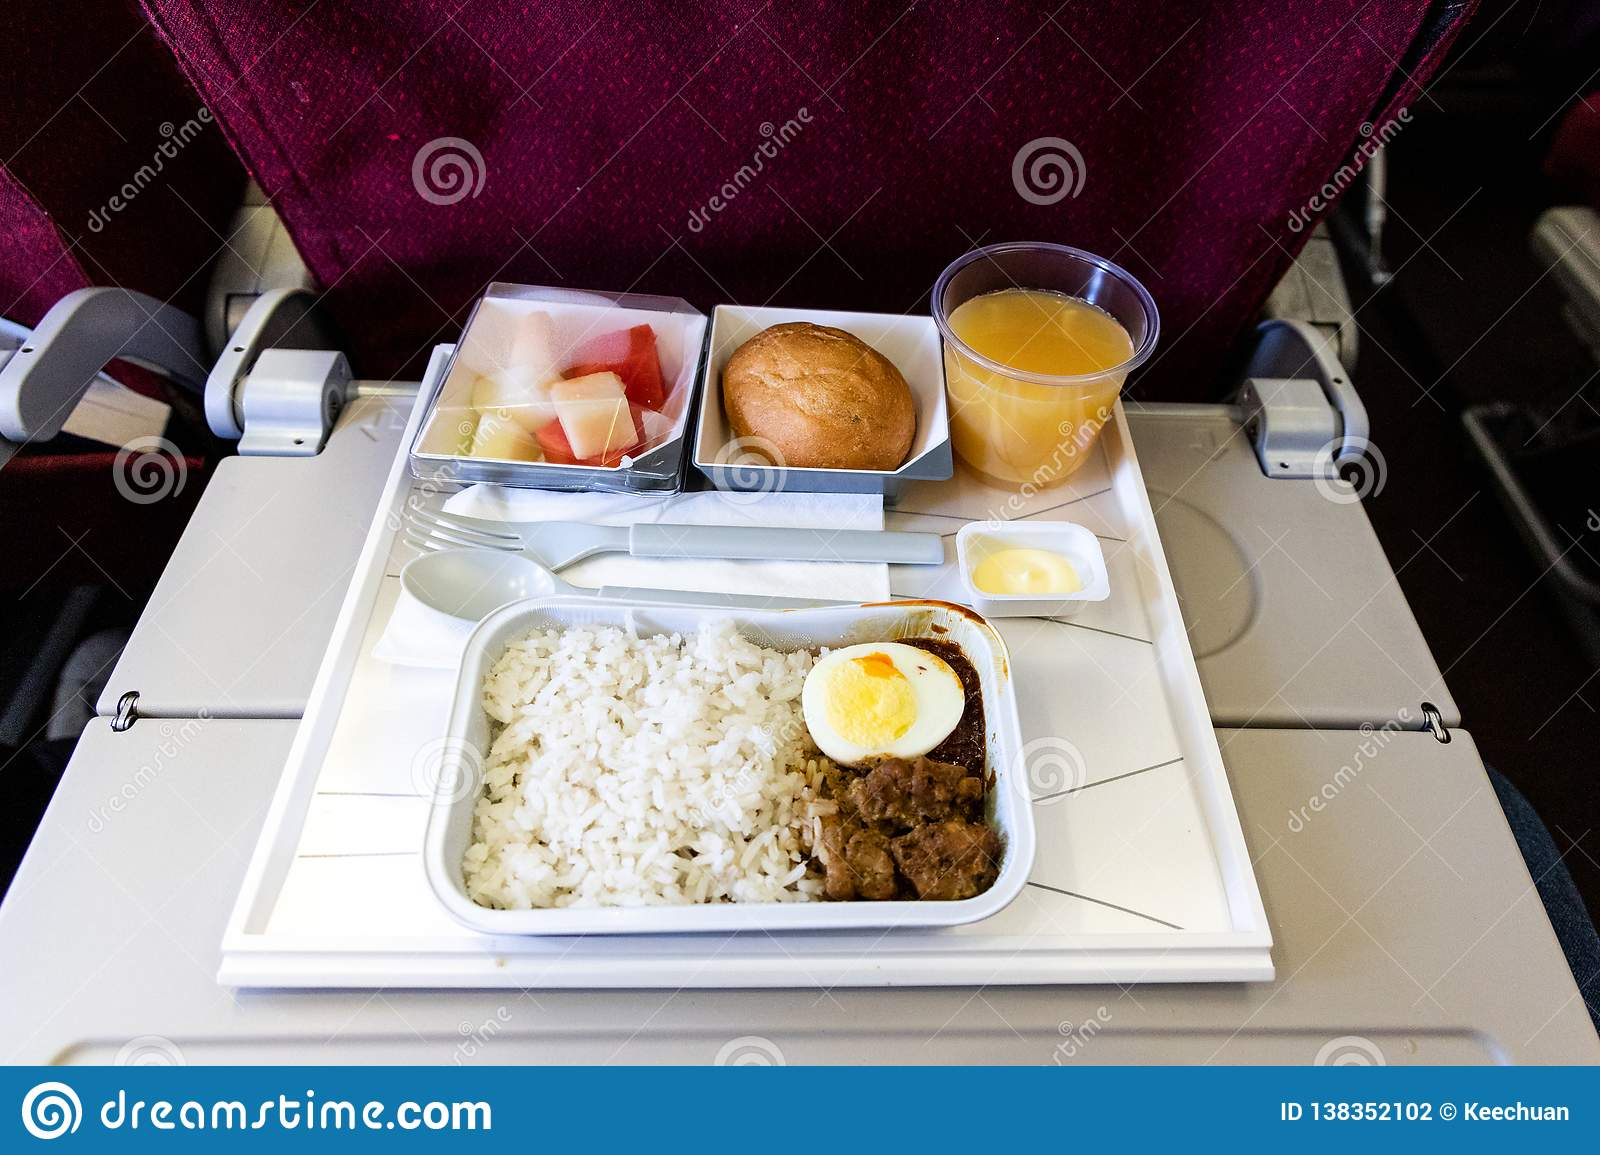 Basic inflight meal consisting rice, egg, beef curry, bread, juice